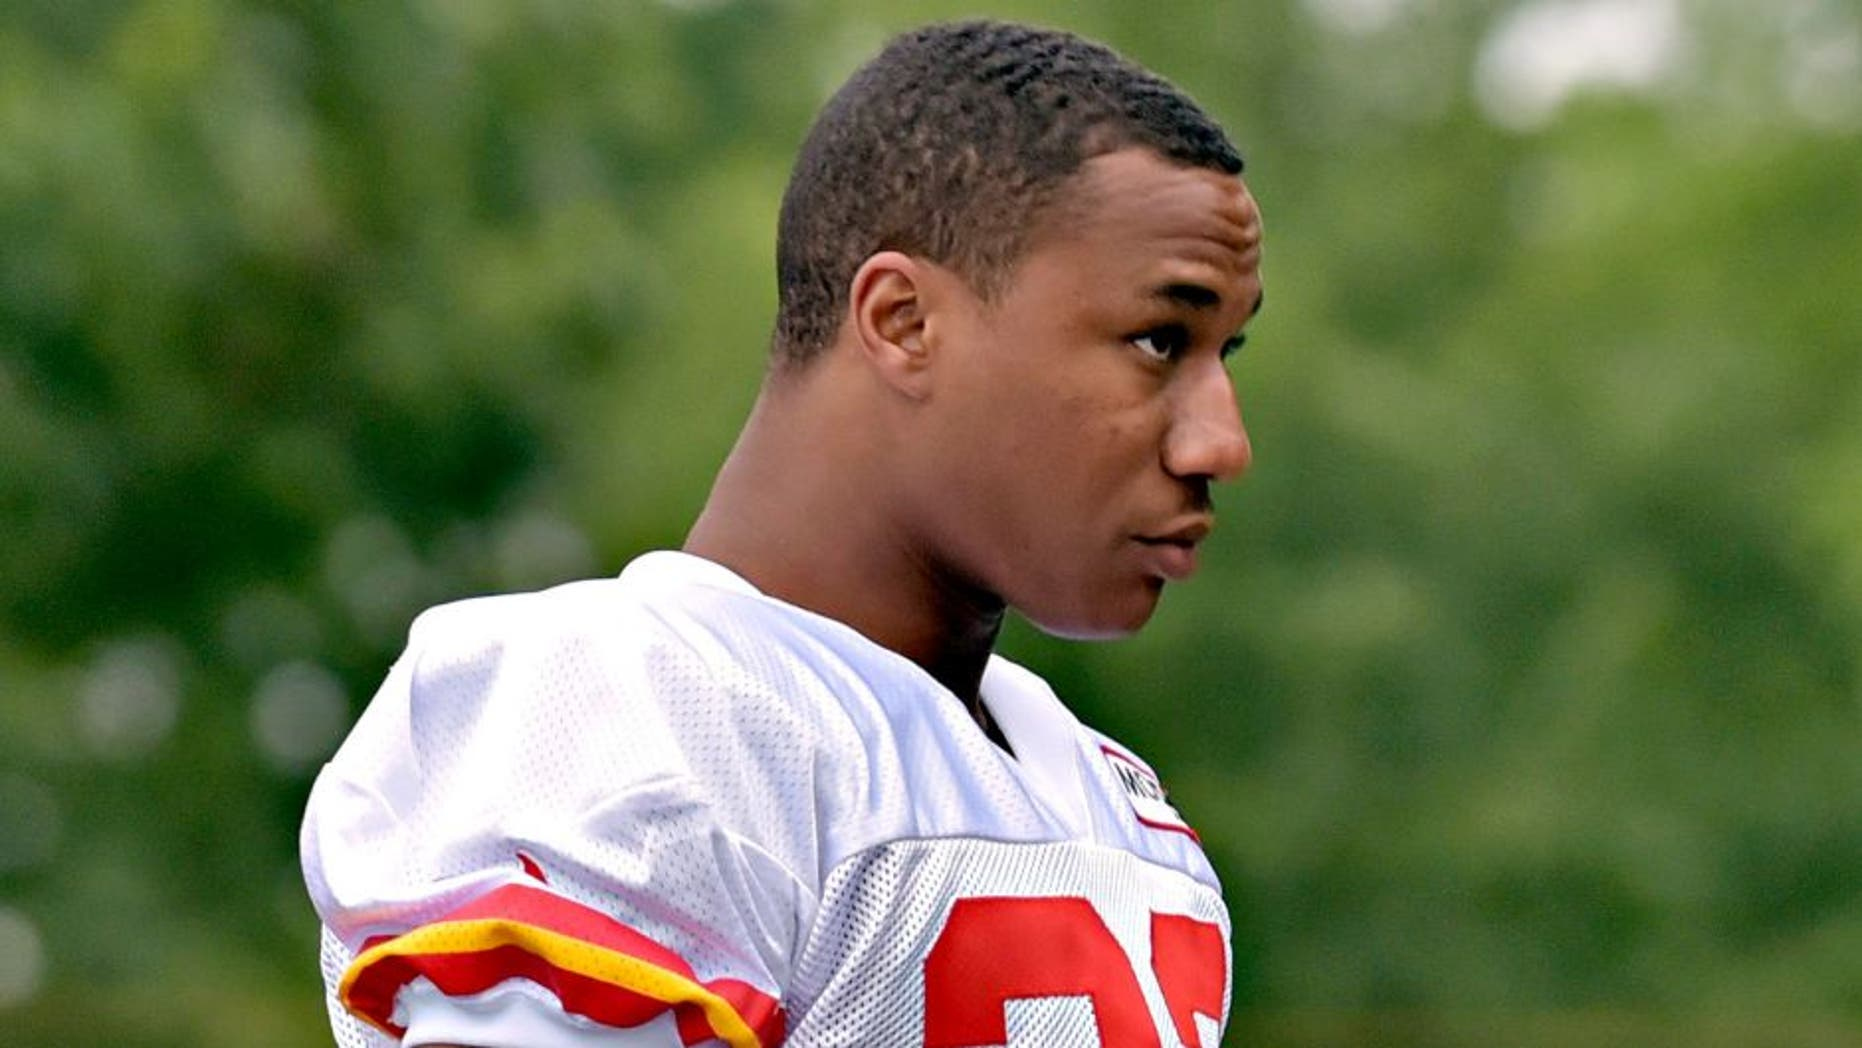 Jul 29, 2015; St. Joseph, MO, USA; Kansas City Chiefs cornerback Marcus Peters (22) walks to the field during the first day of training camp at Missouri Western State University. Mandatory Credit: Denny Medley-USA TODAY Sports